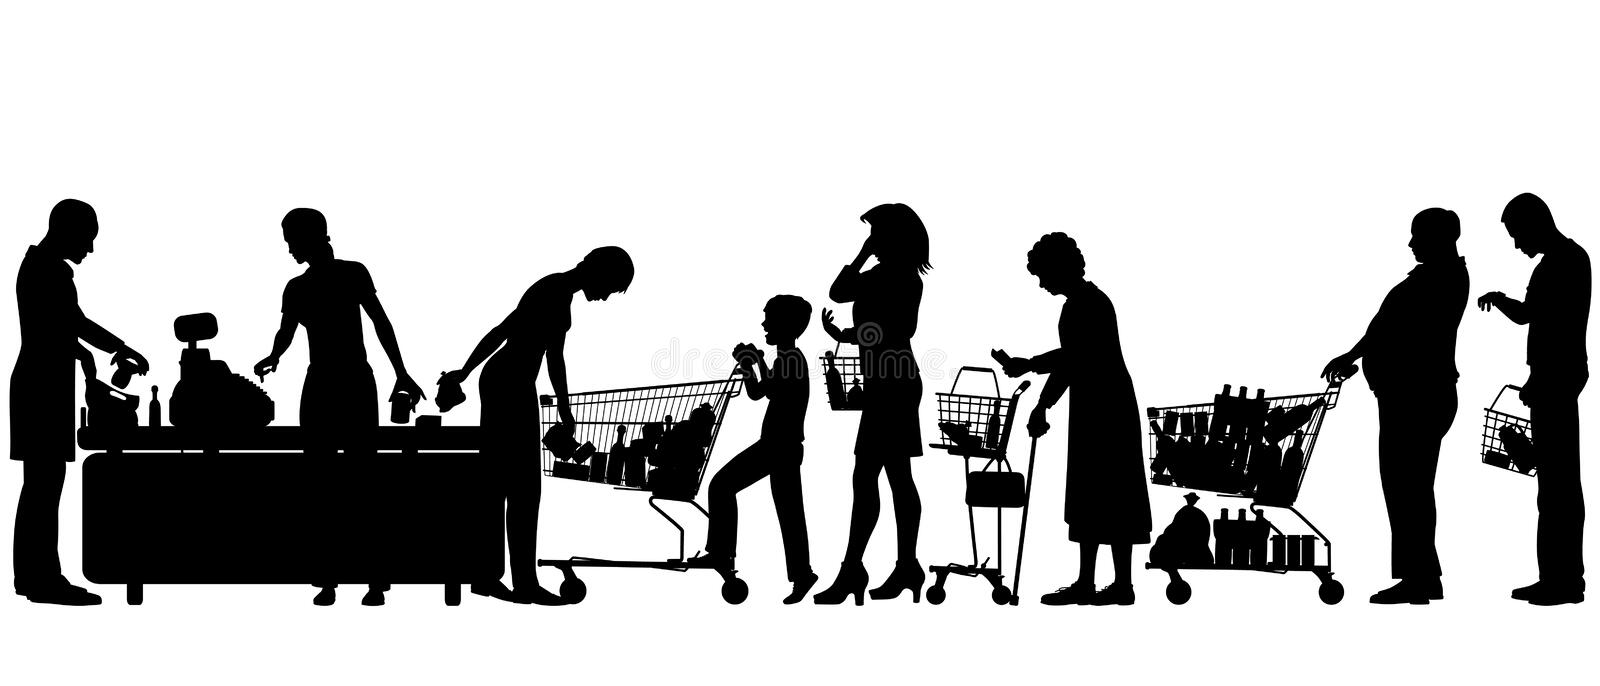 Checkout till. Editable vector silhouettes of people in a supermarket checkout queue with all elements as separate objects vector illustration